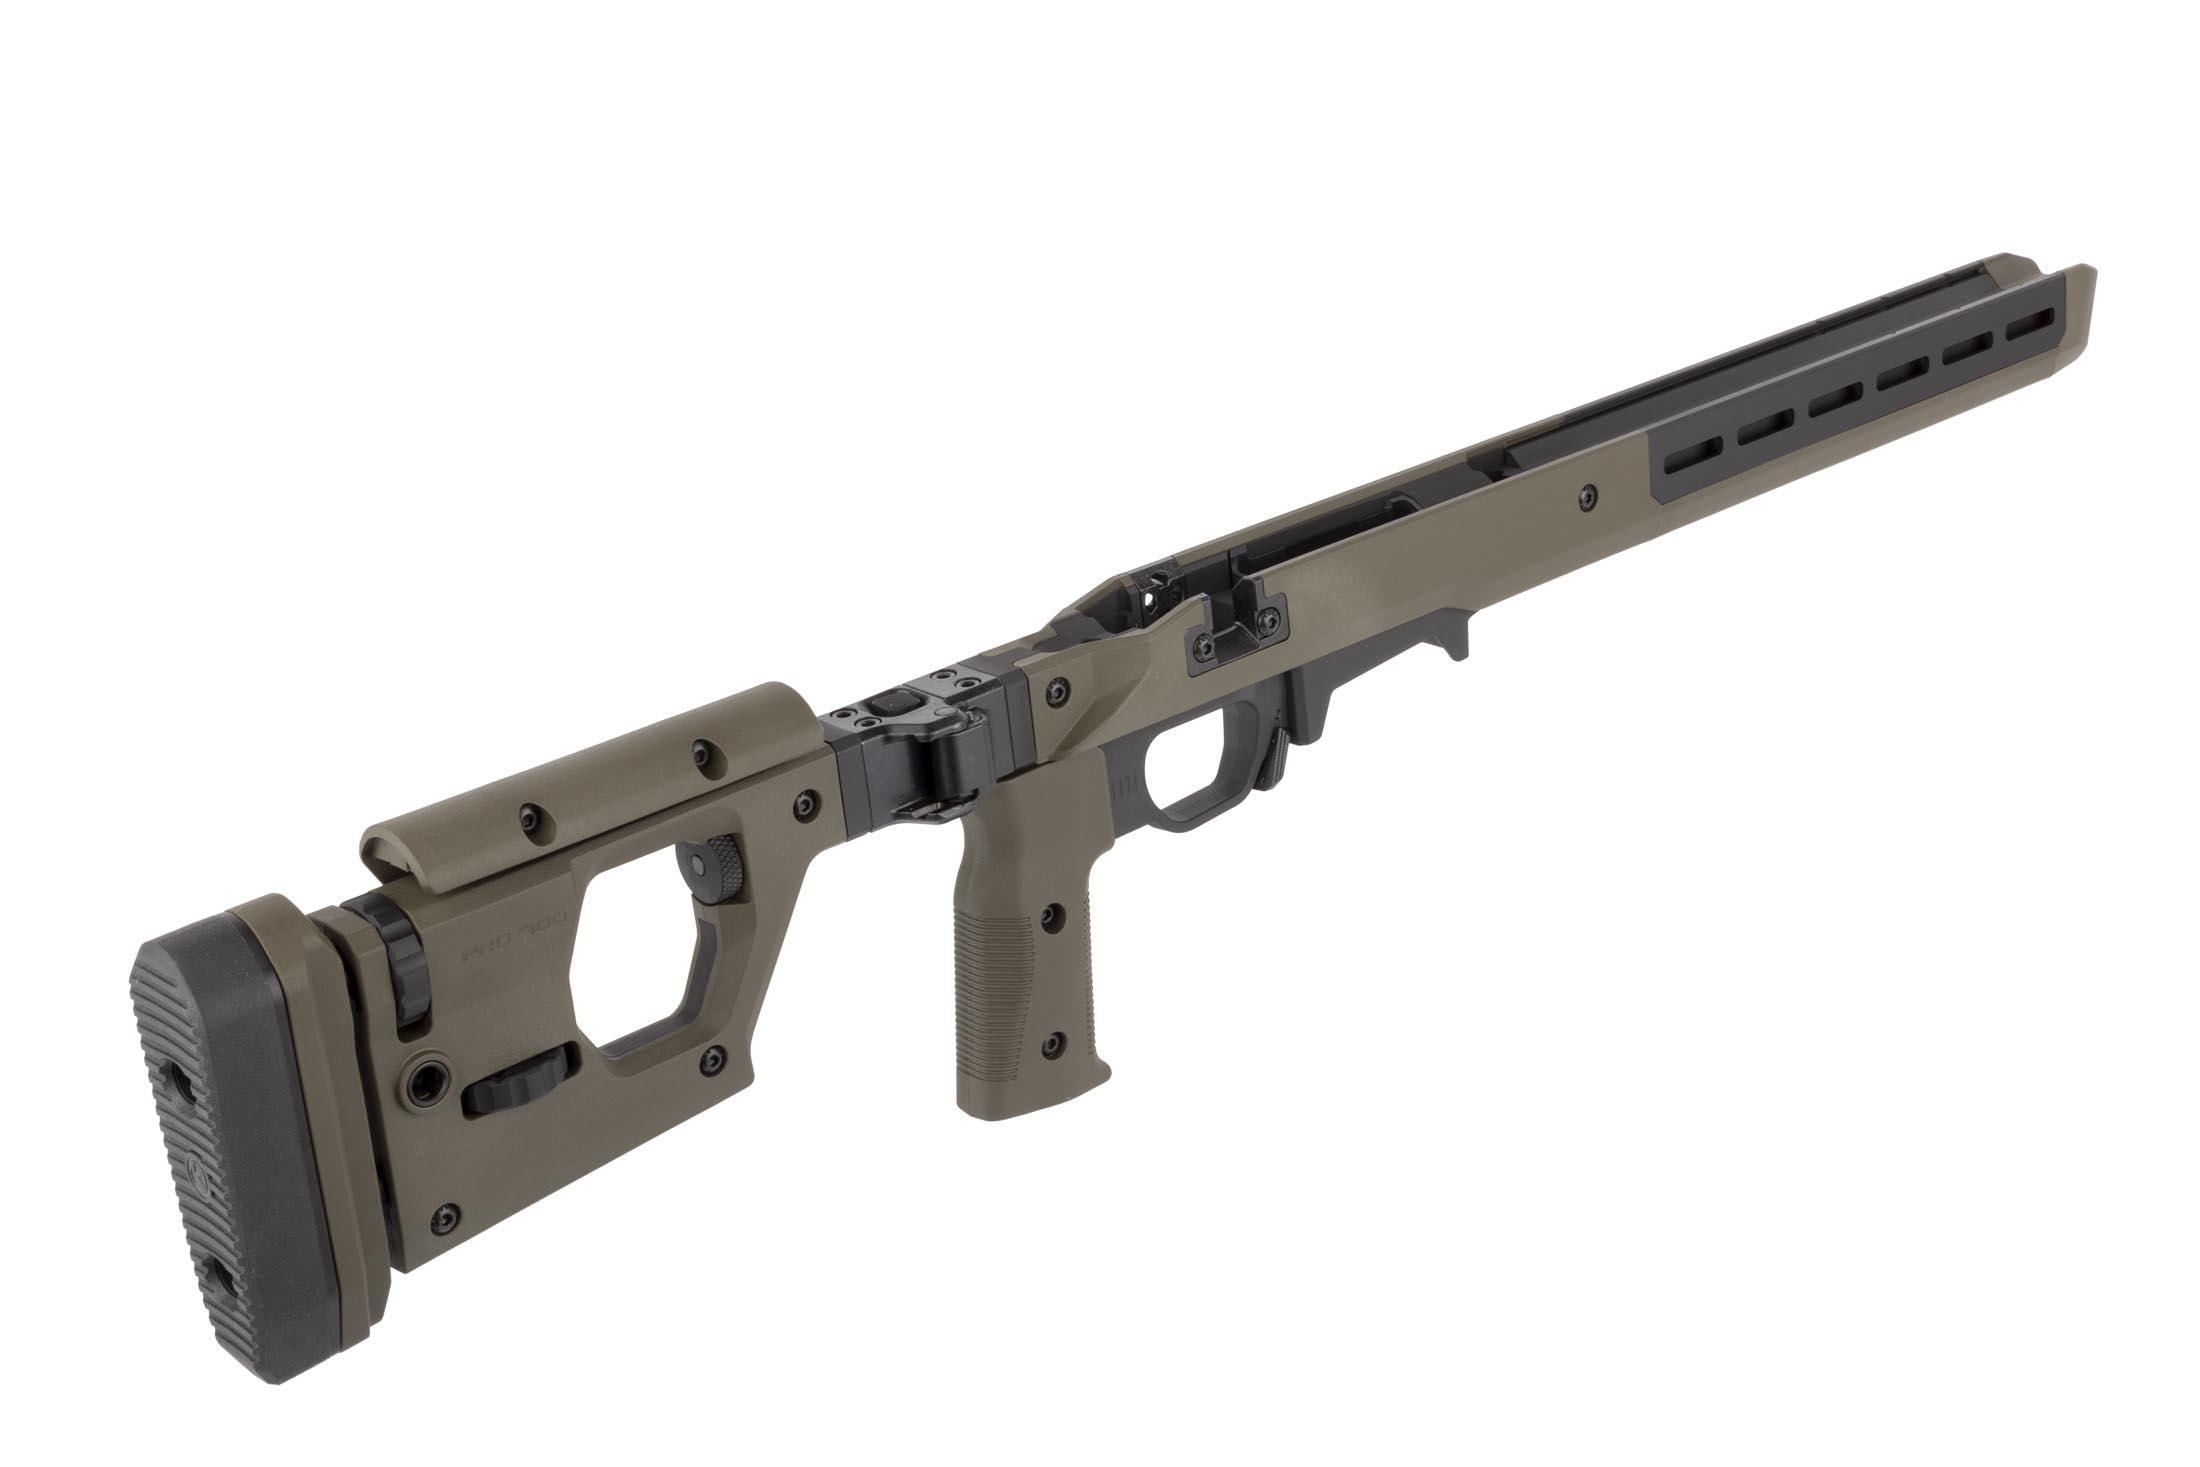 Magpul Pro 700 short action rifle chassis in ODG has an adjustable vertical pistol pistol grip and can be configured left or right